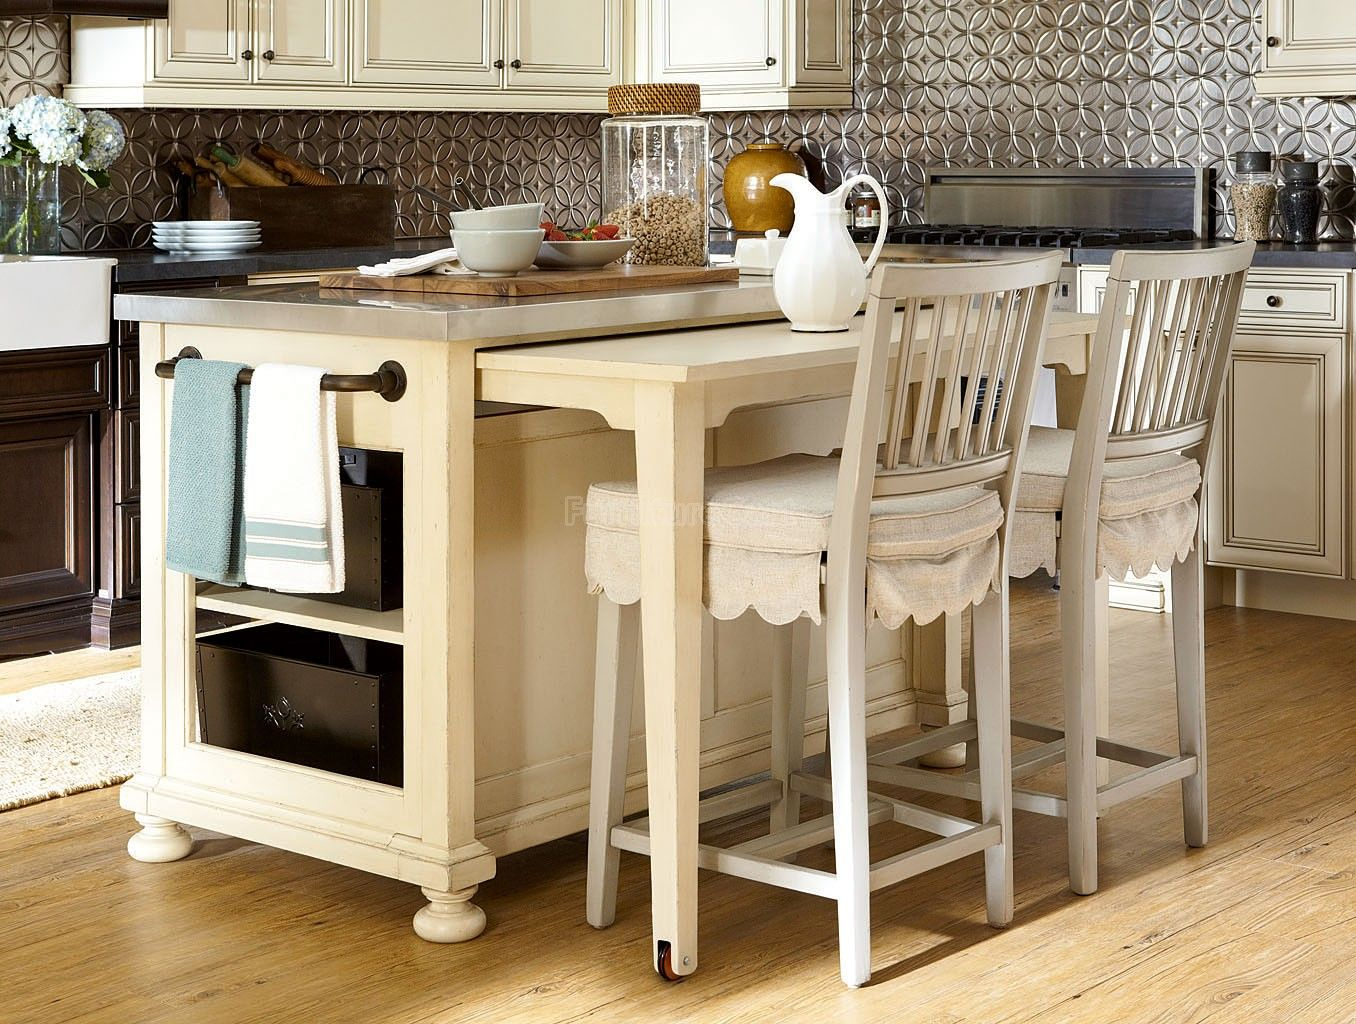 Paula Deen By Universal 394644 Kitchen Island   Goodu0027s NC Discount Furniture  Stores And Furniture Outlets